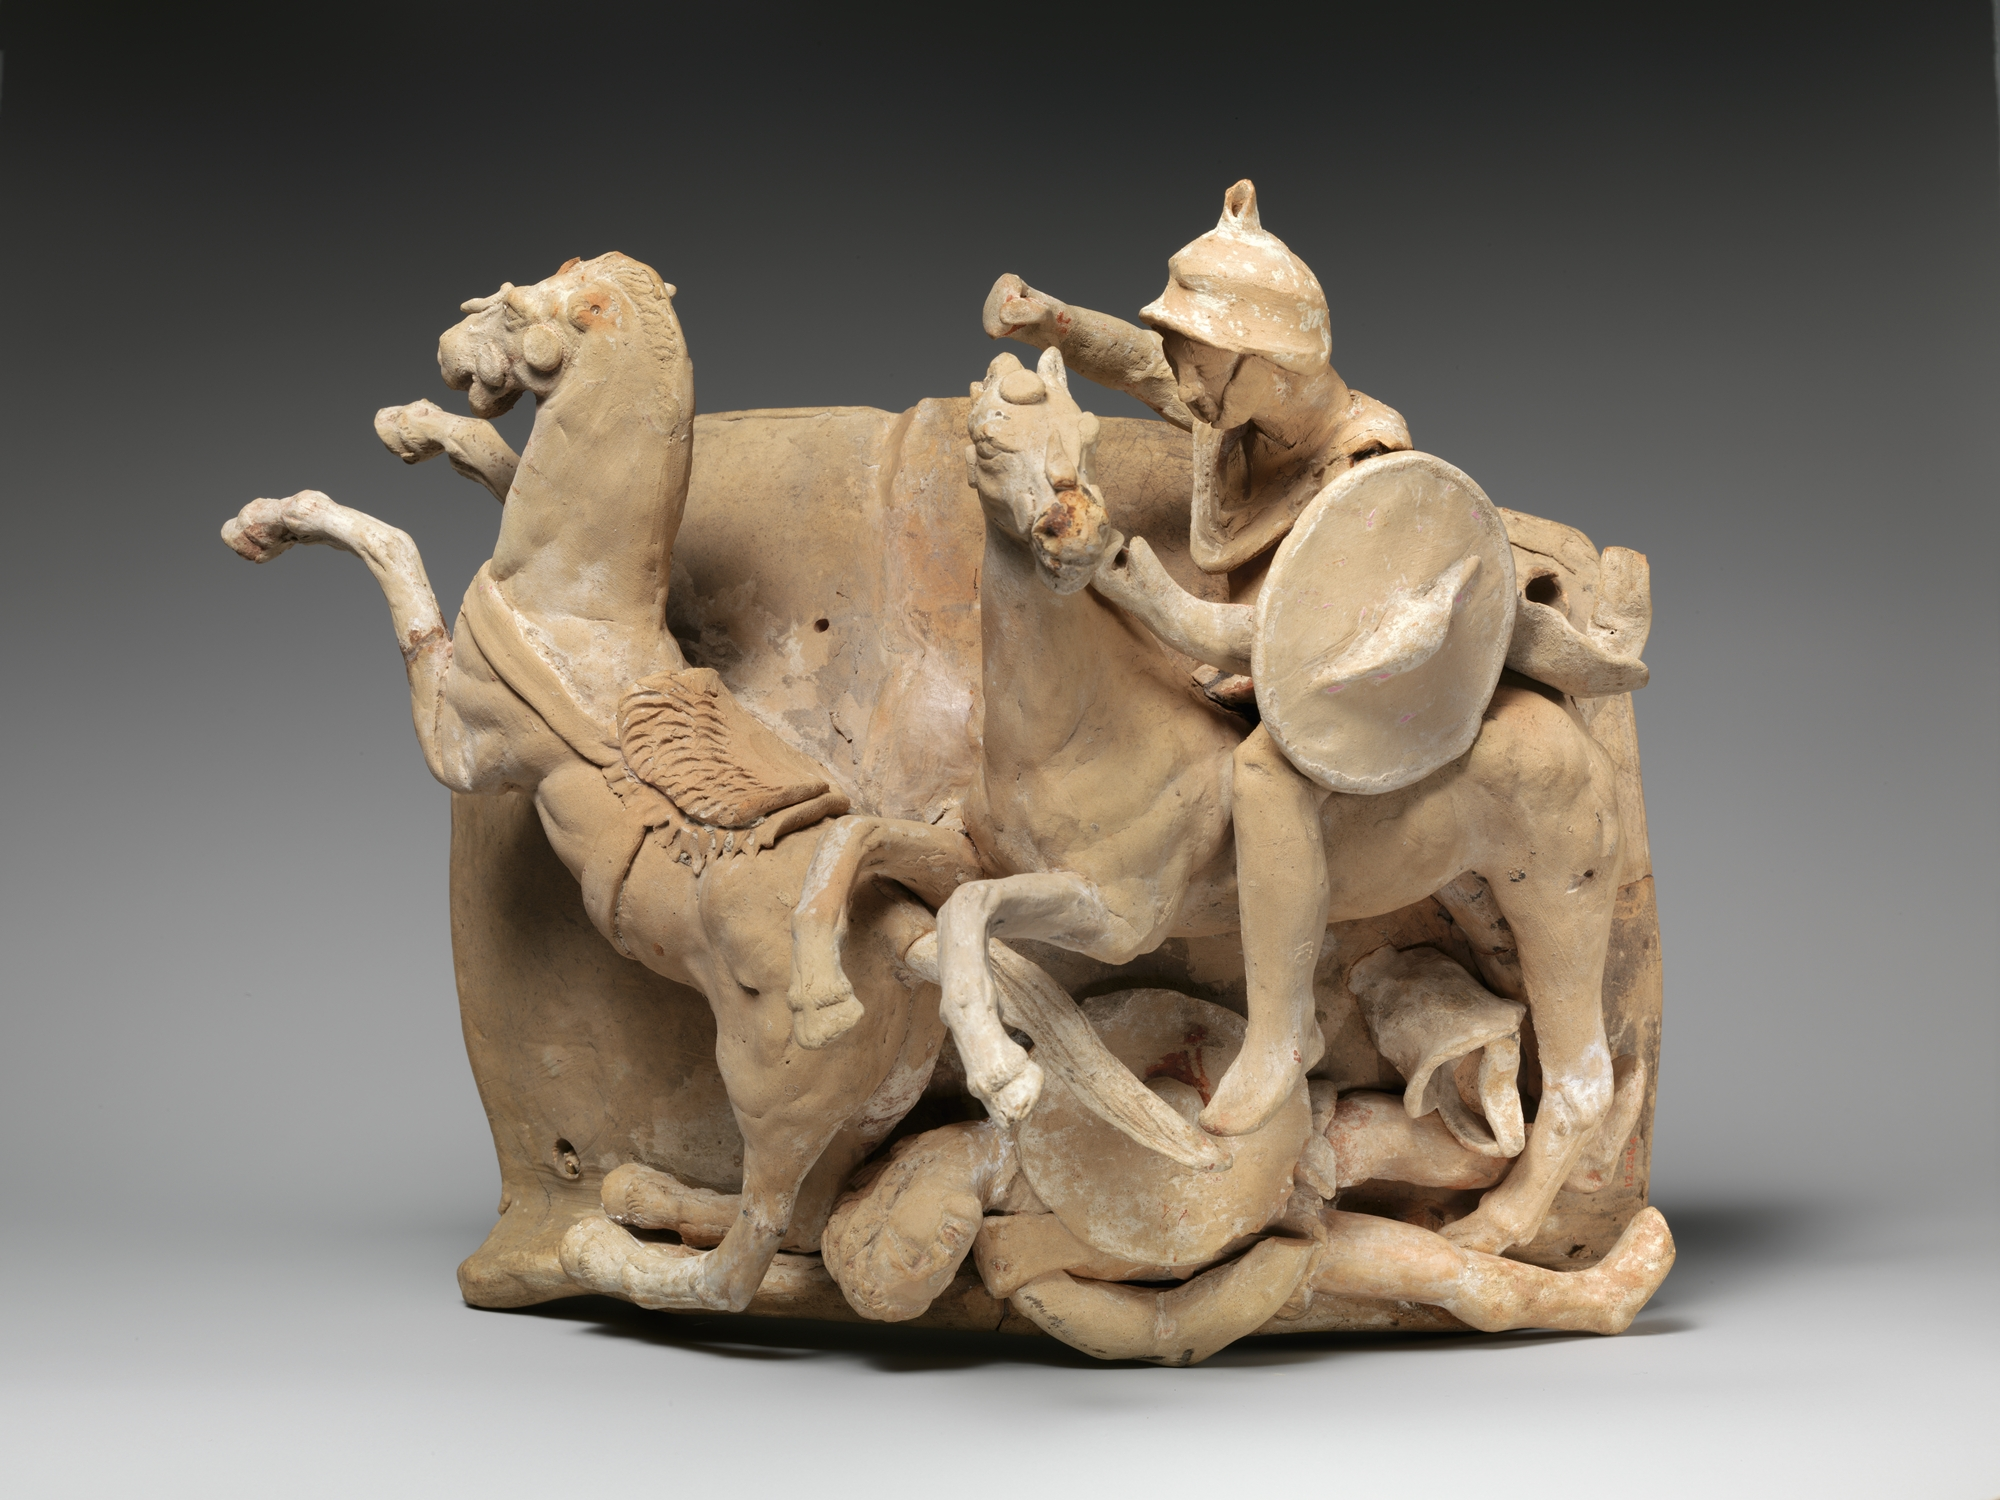 Terracotta relief, probably from a funnel vase, late 3rd–early 2nd century BC, Canosa, Apulia, Italy